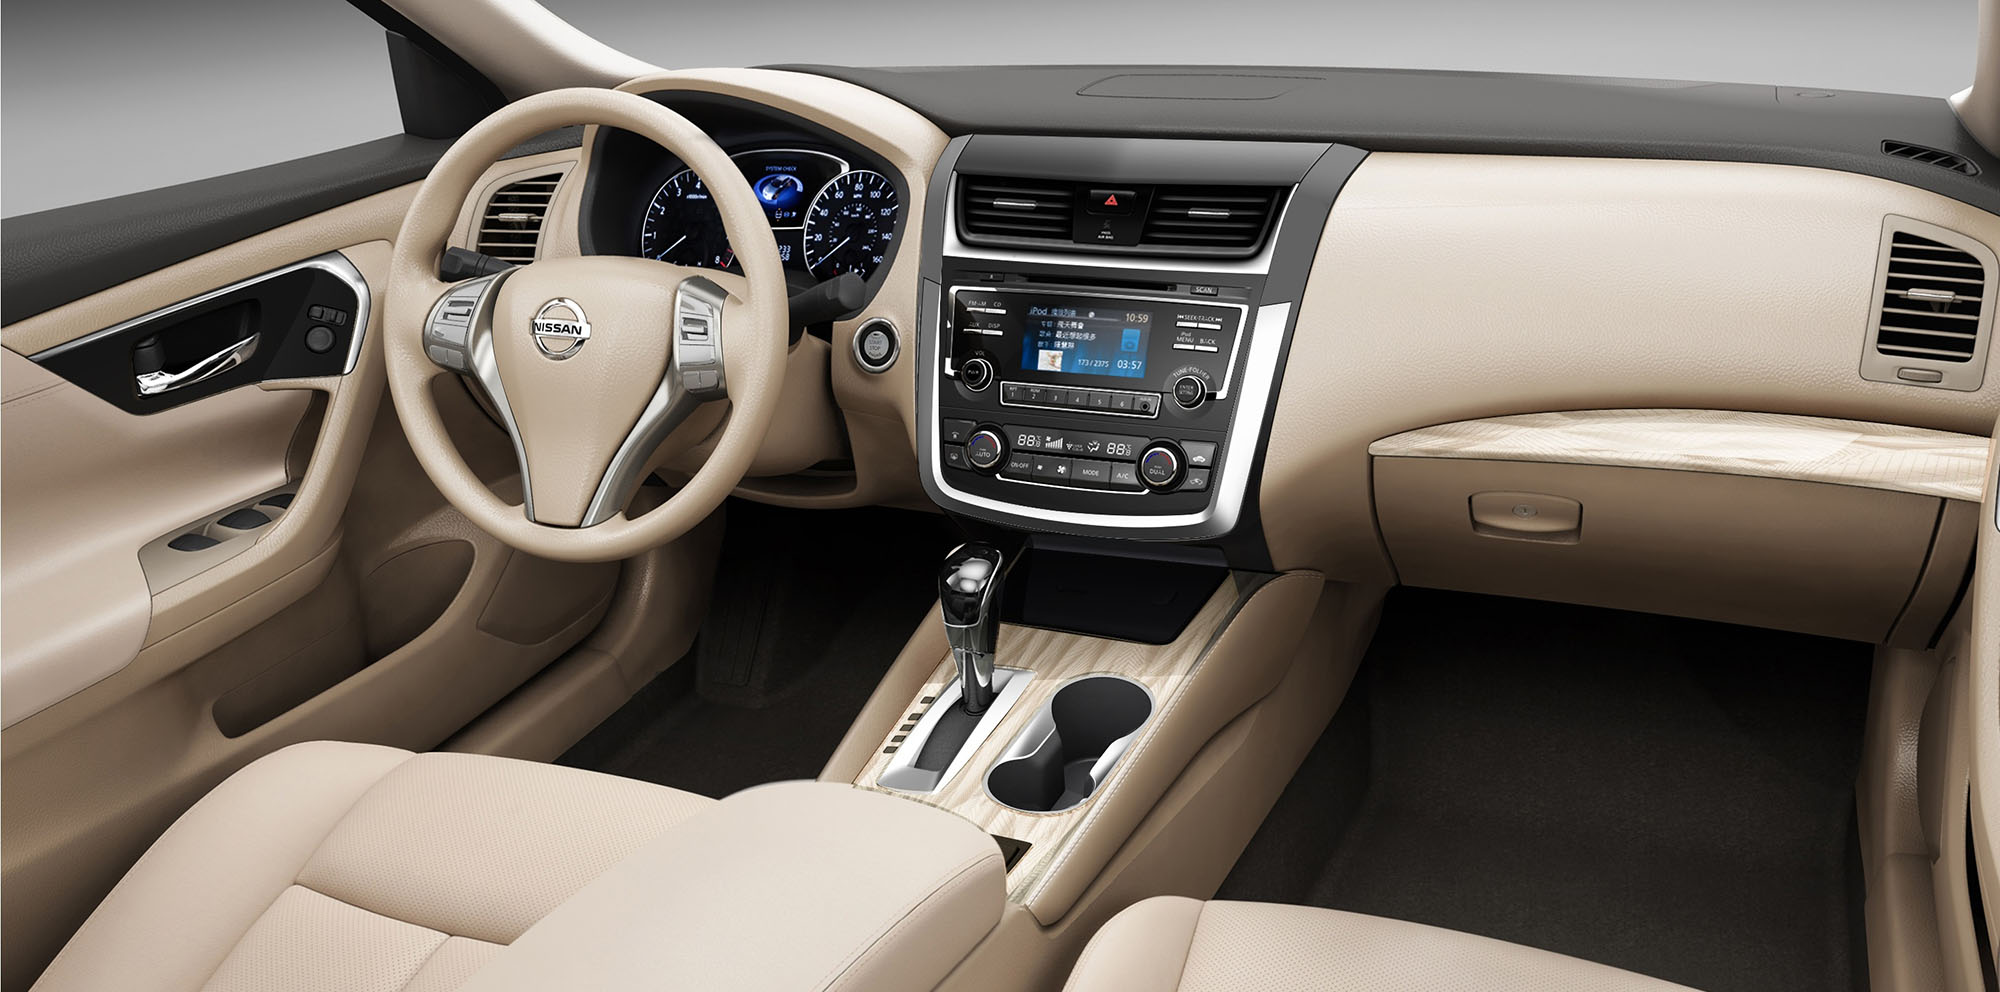 Nissan Altima facelift unveiled in the USA - photos | CarAdvice